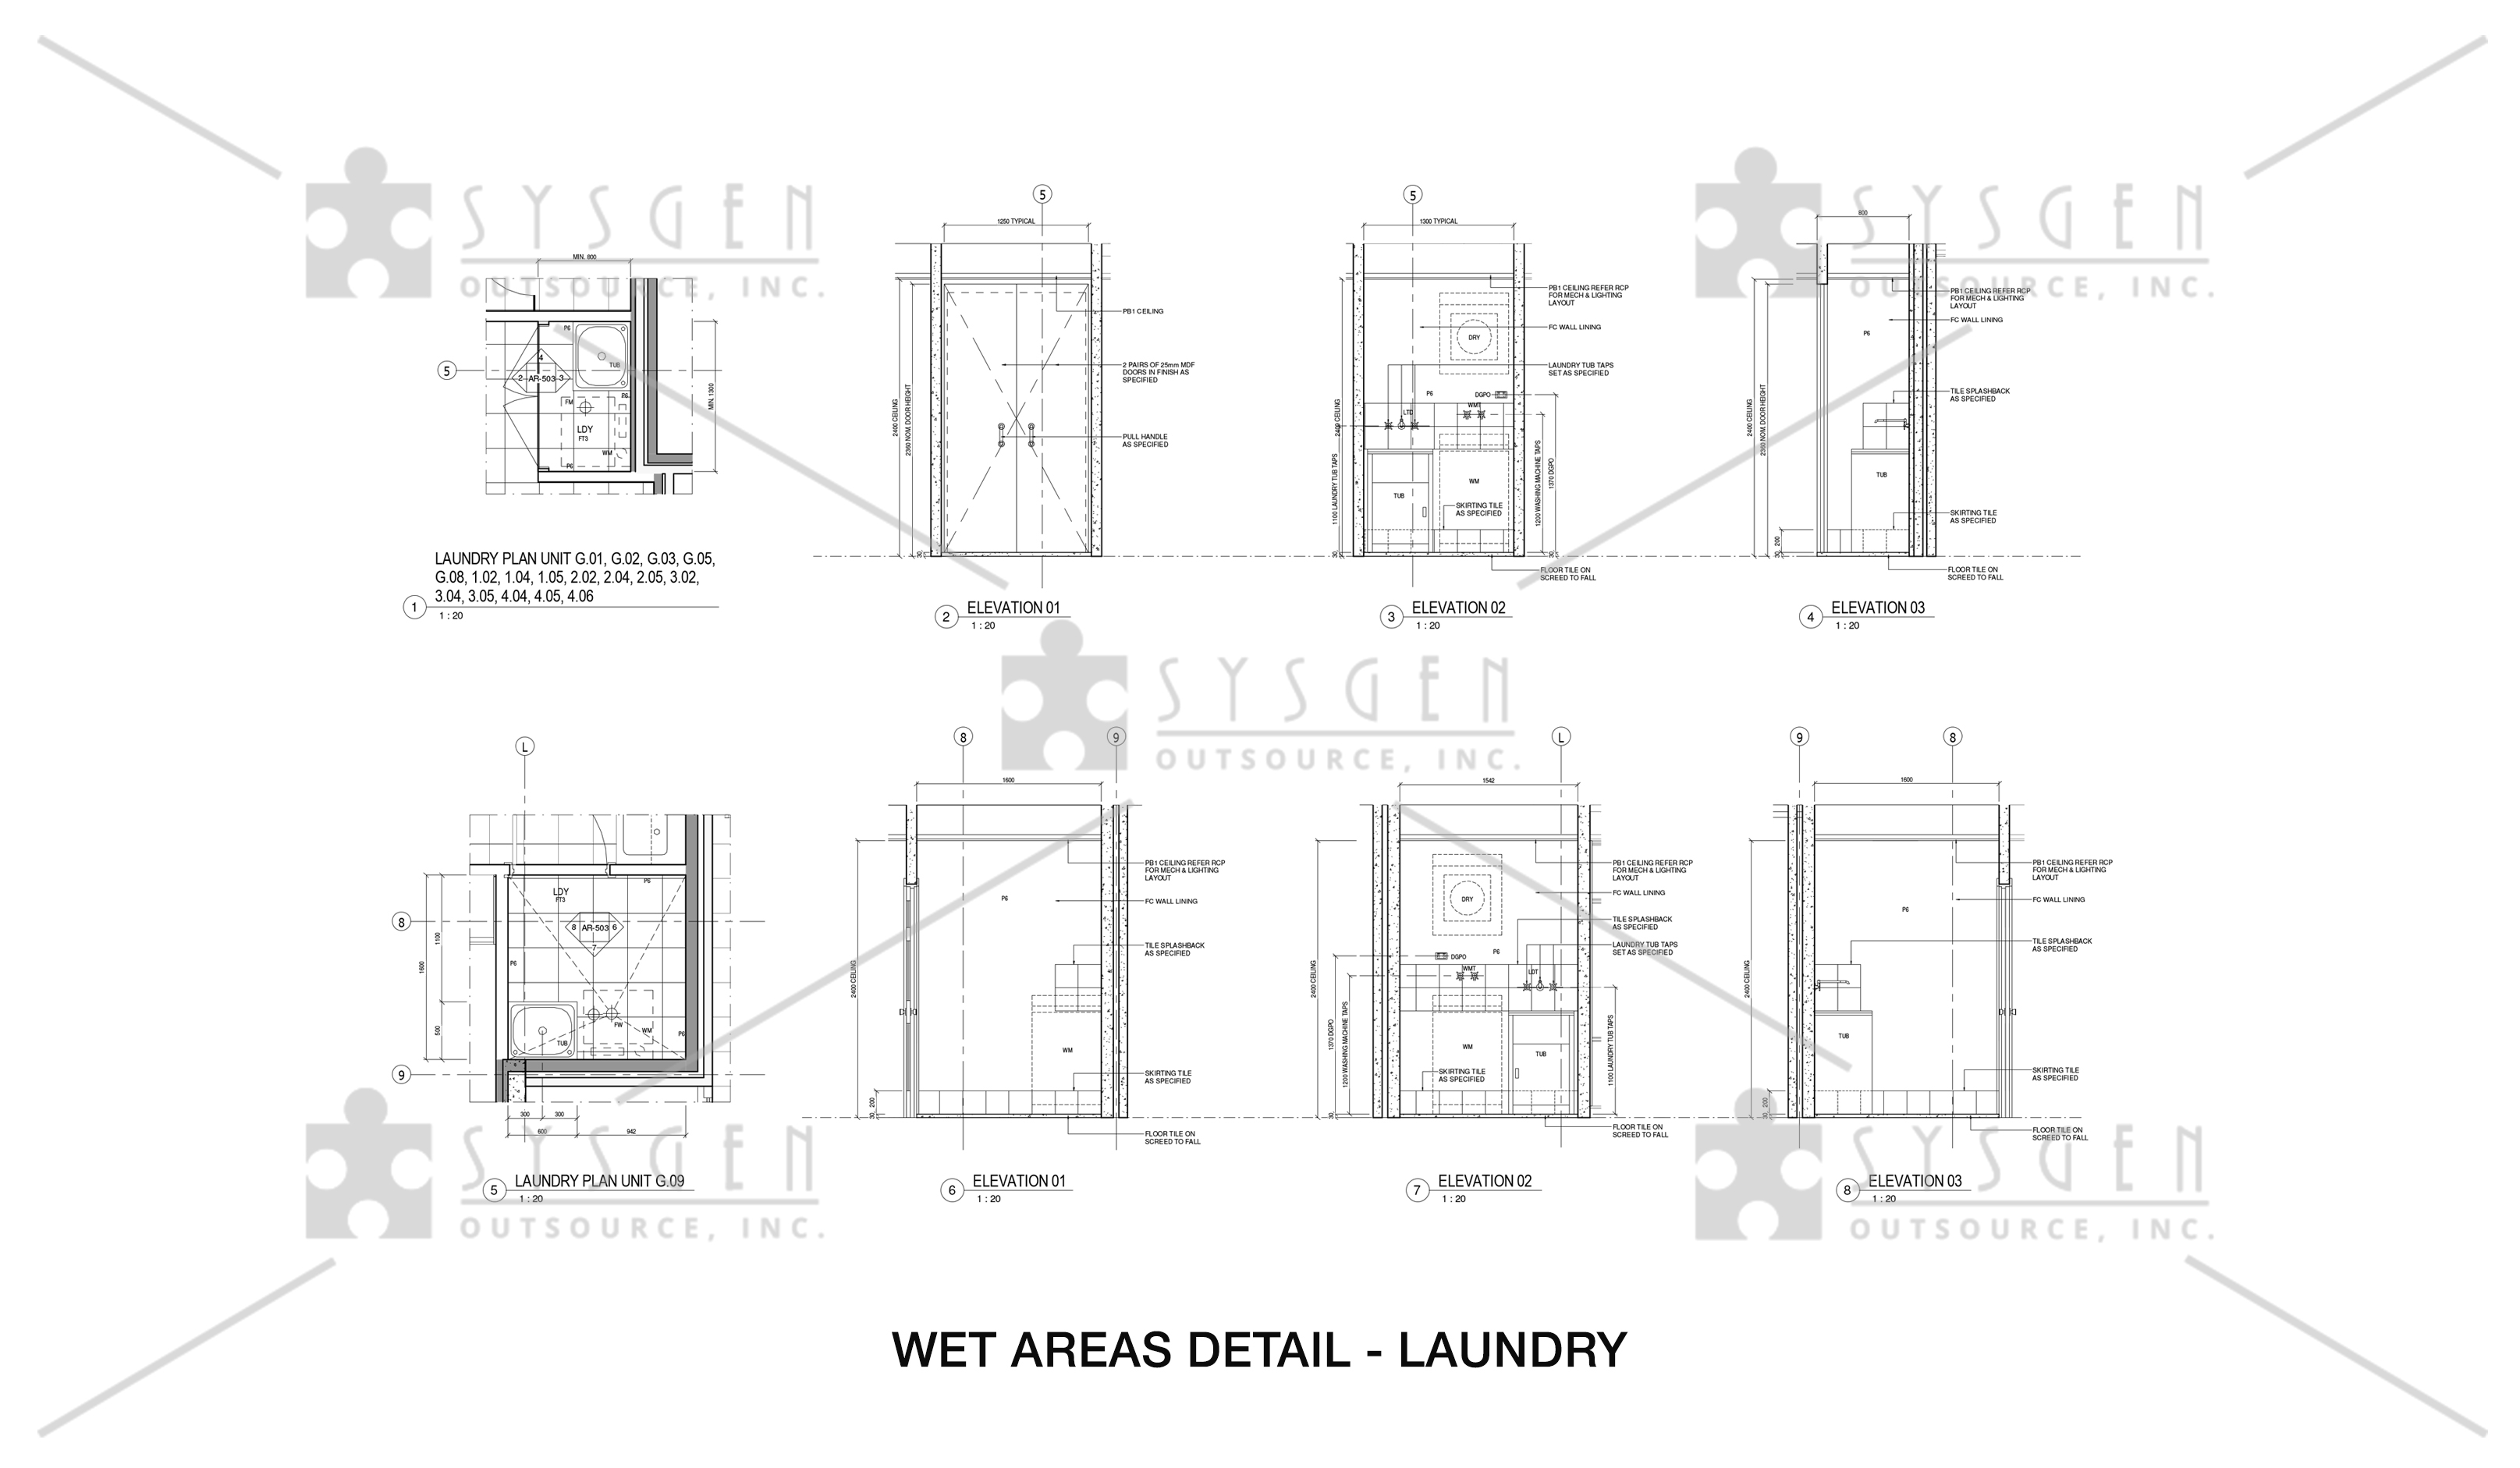 sysgen-outsource-cad-outsourcing-services-cad-conversion-revit-4-storey-residential18